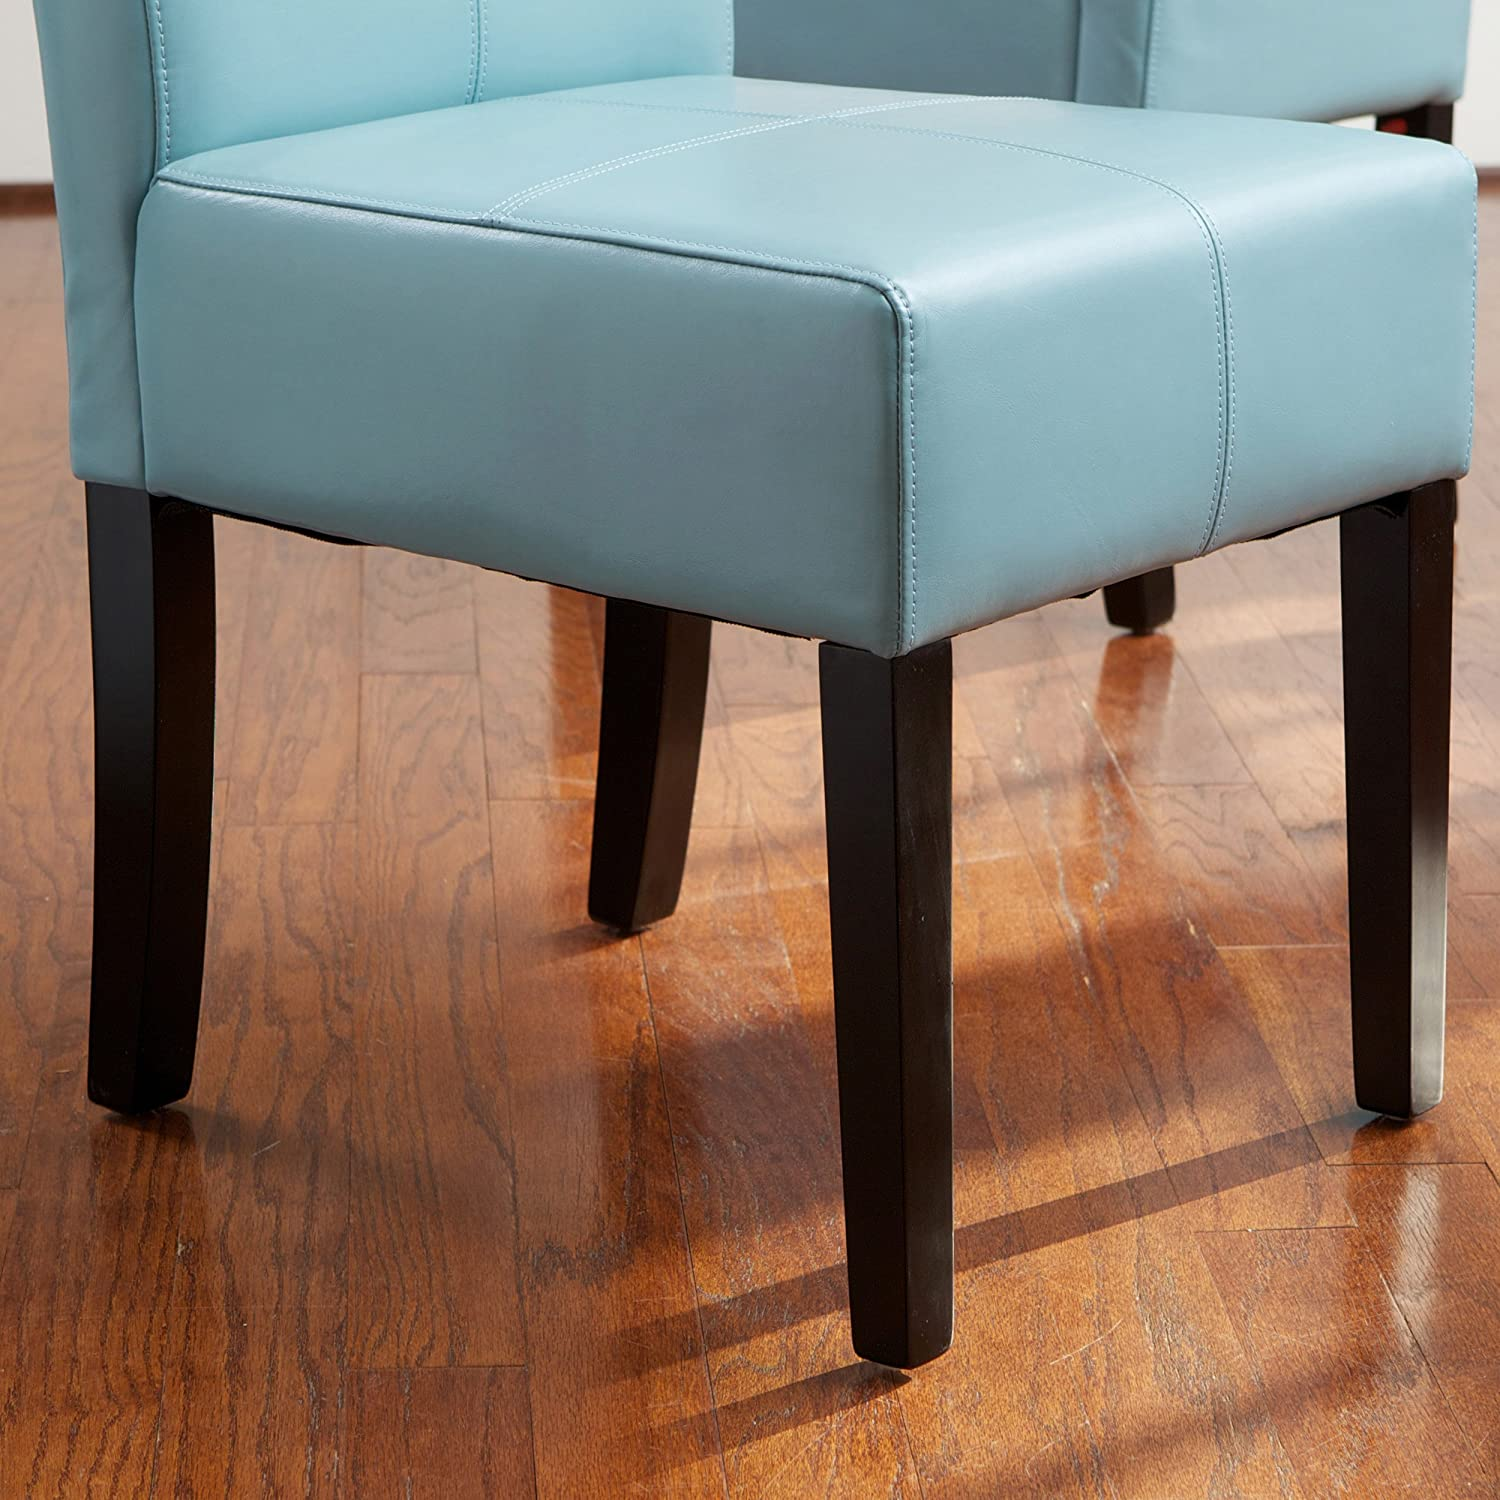 Emilia Teal Blue Leather Dining Chair Set of 2 Amazon Home